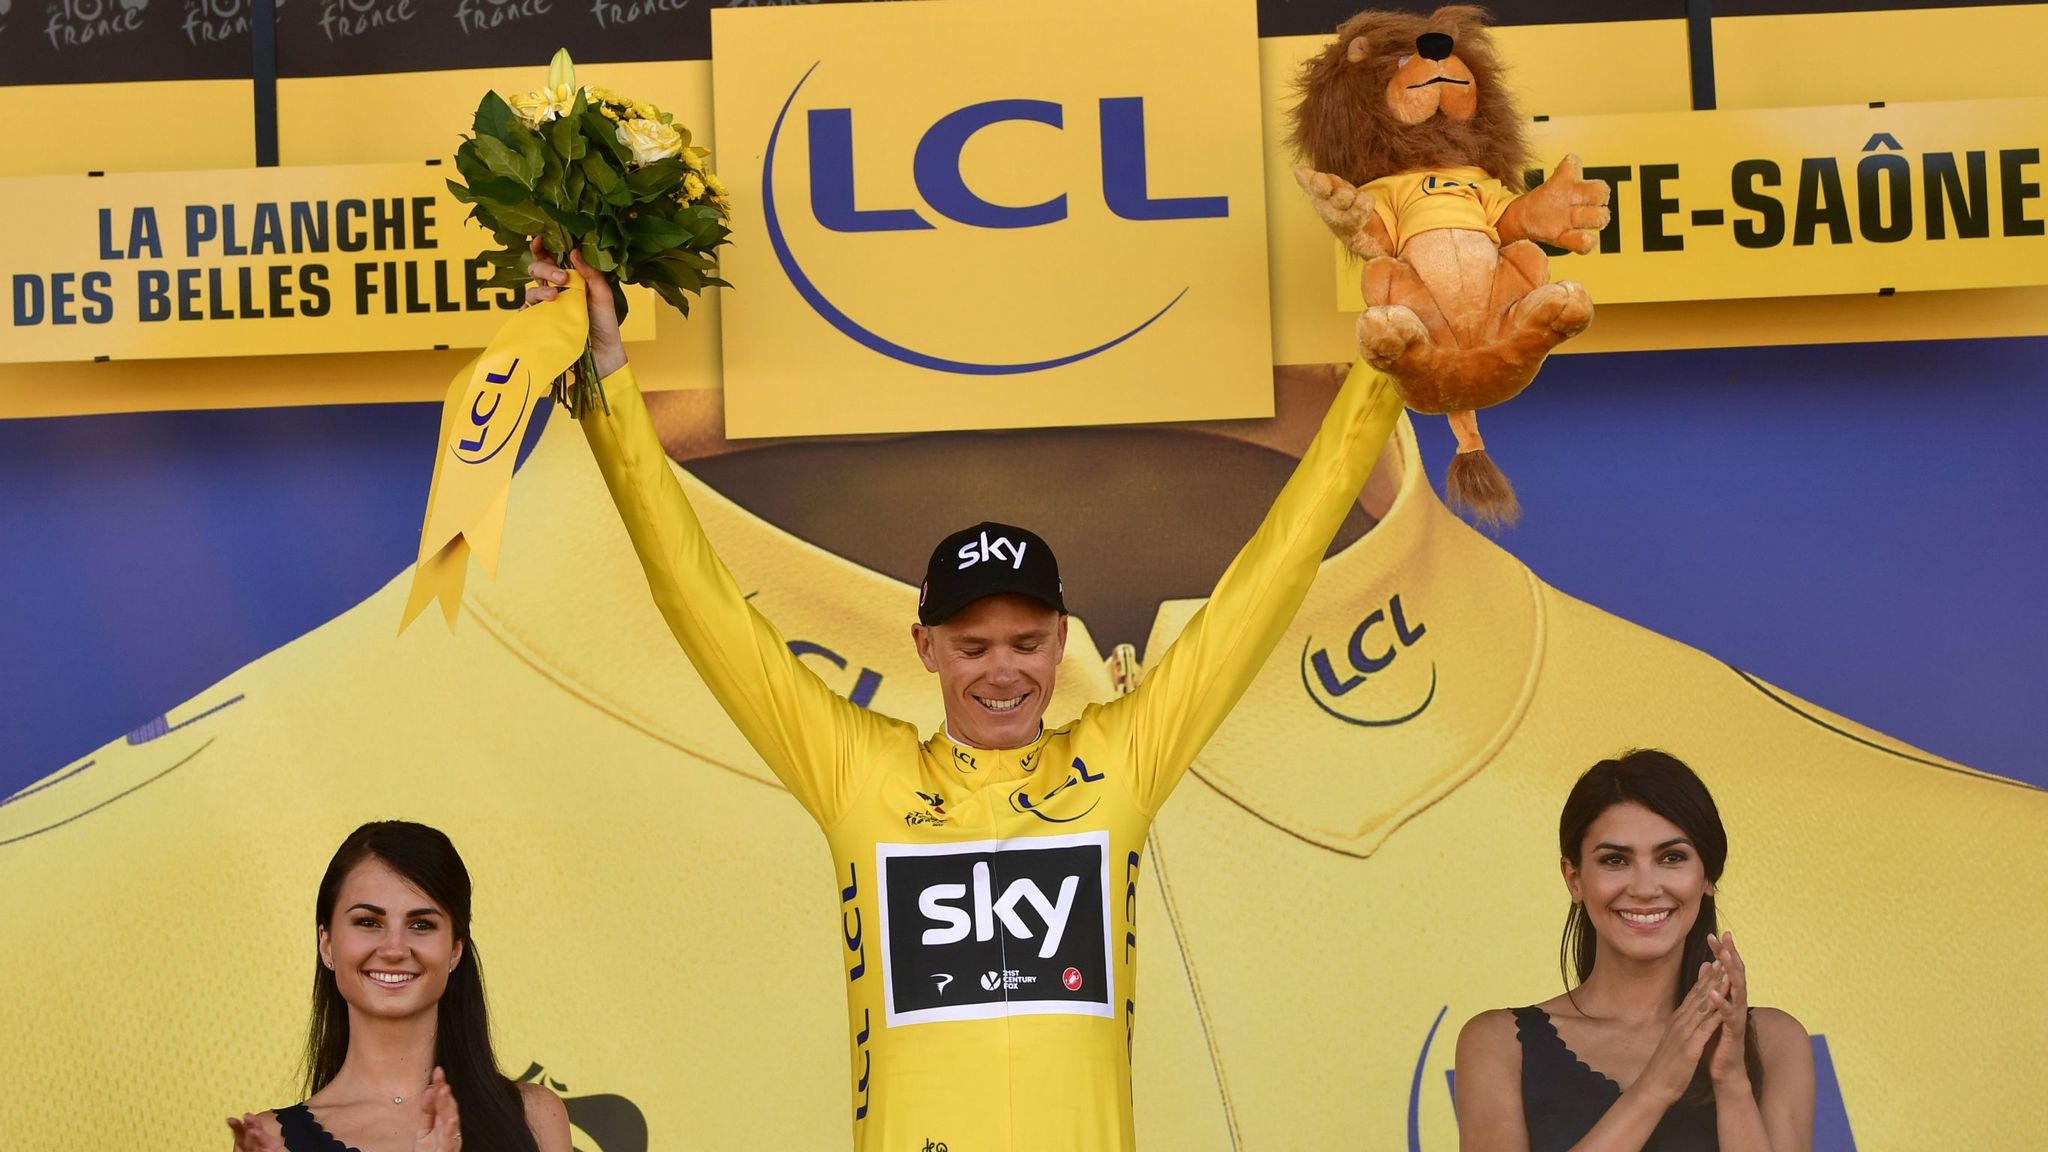 Chris Froome: Tour de France winner returns to racing at 2020 UAE tour